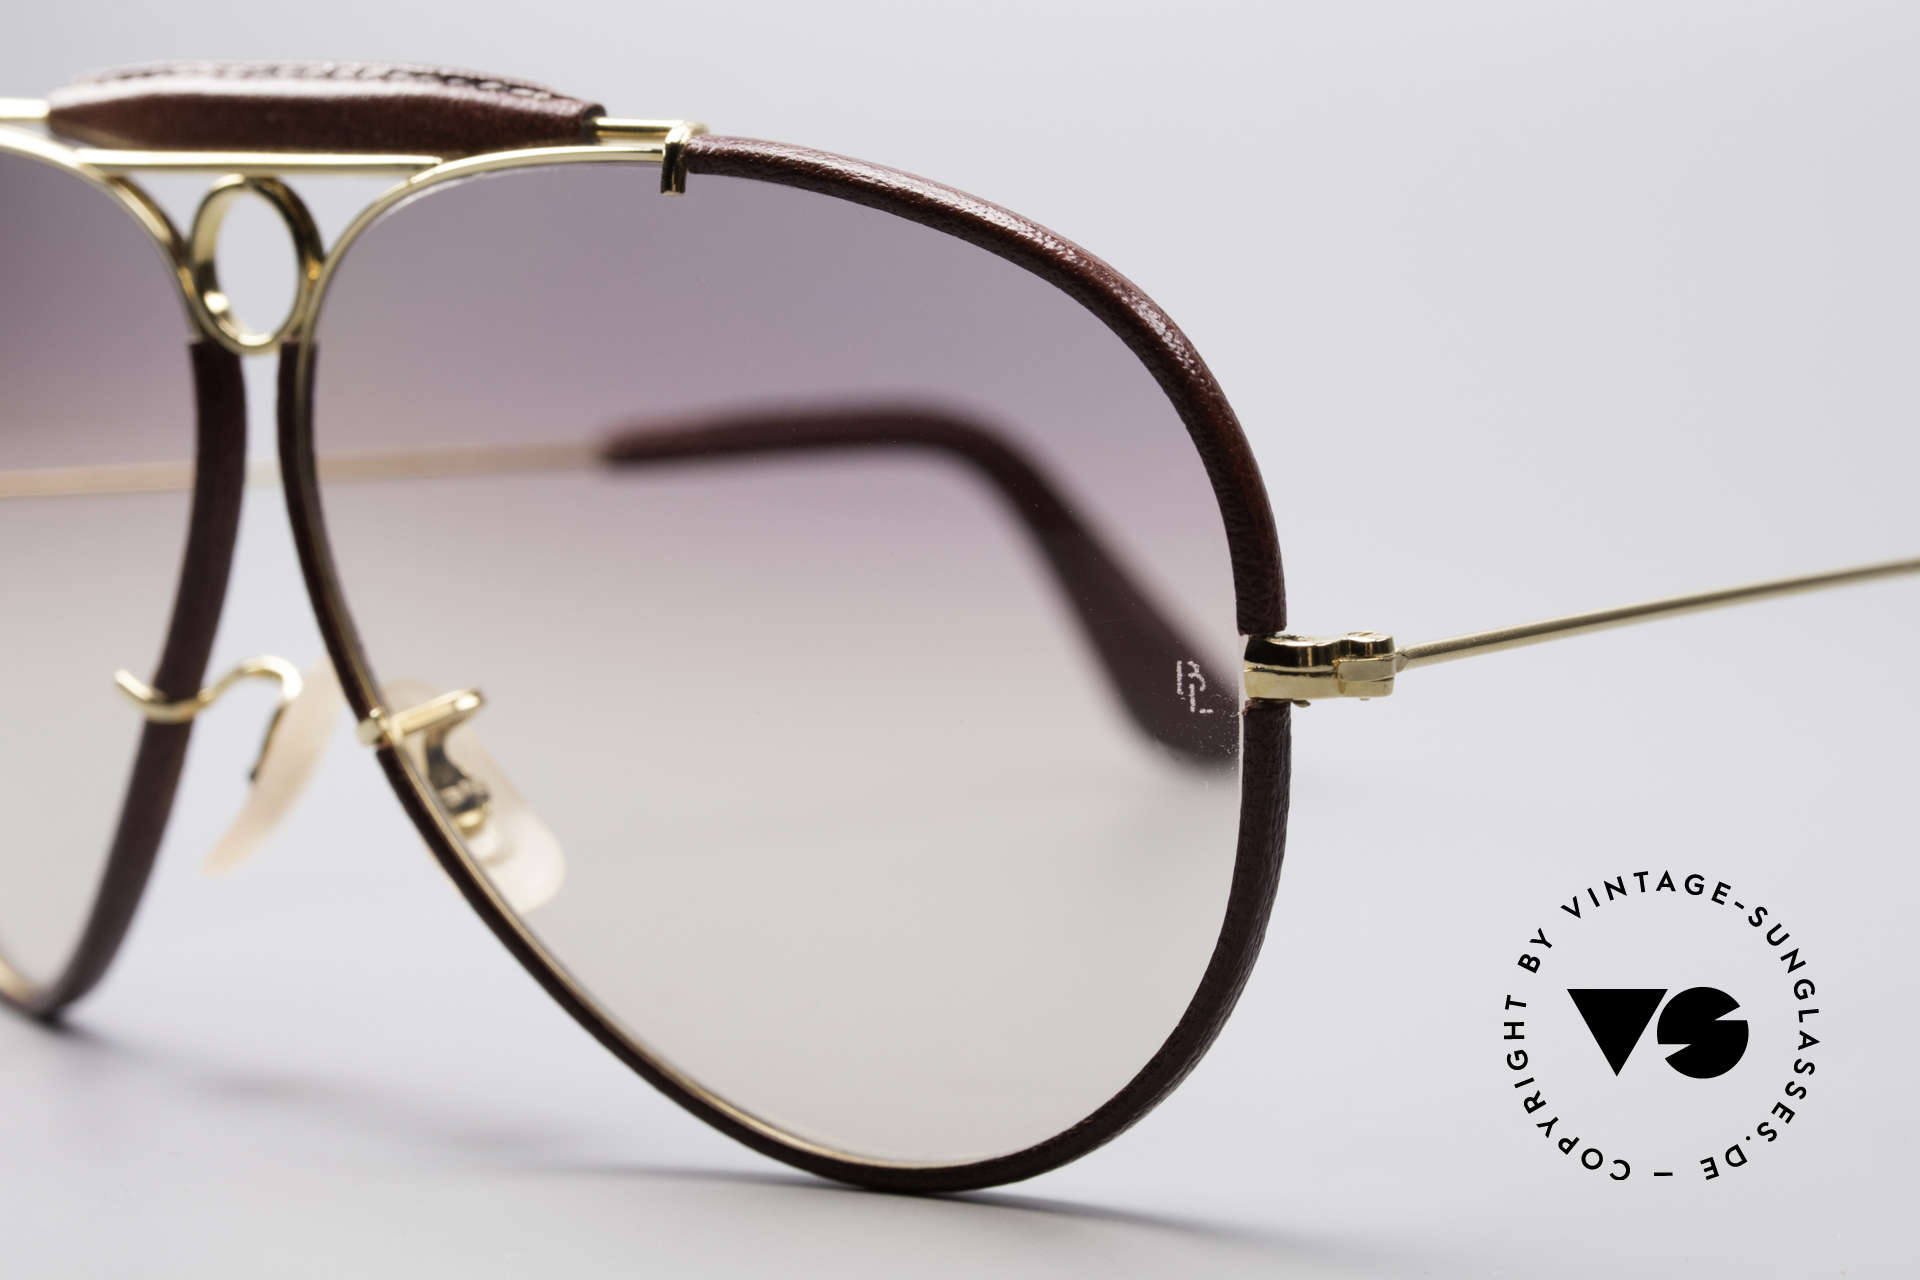 98aff7f043 Original Vintage Ray Ban Shooter Ultragradient « Heritage Malta